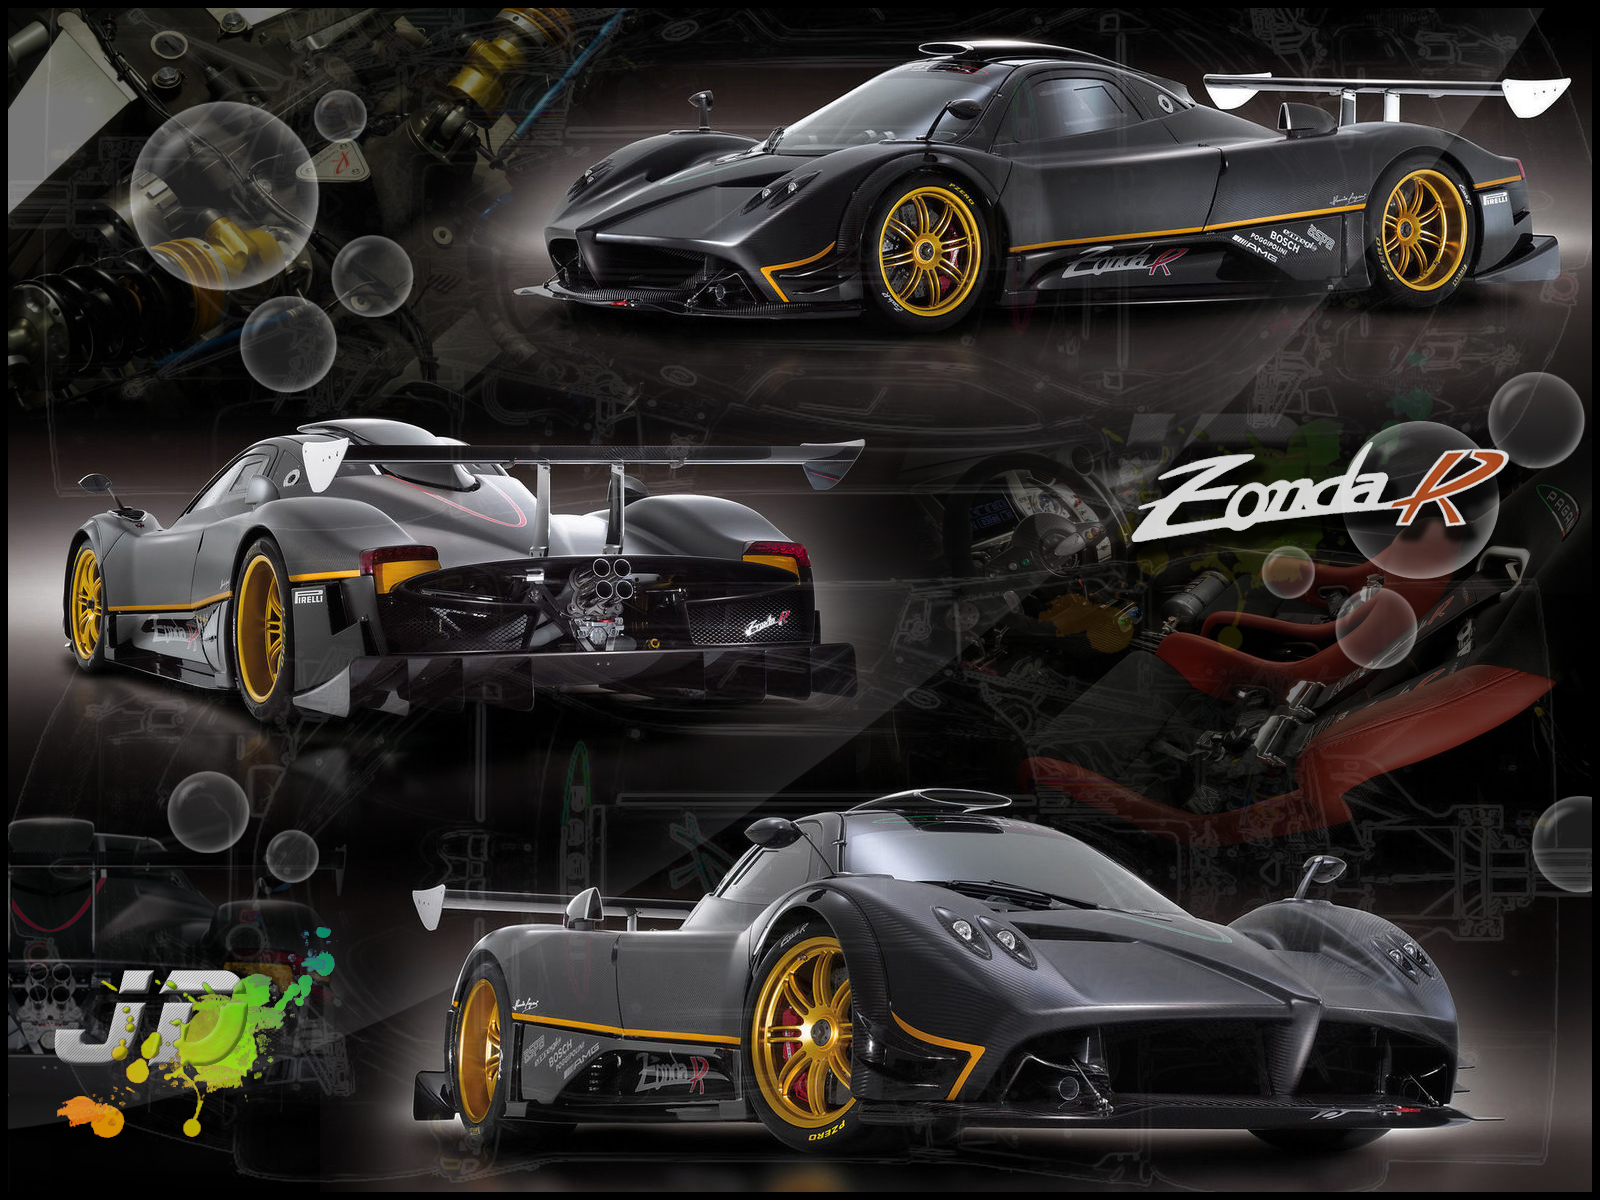 Pagani-car-wallpaper-wp42469-1